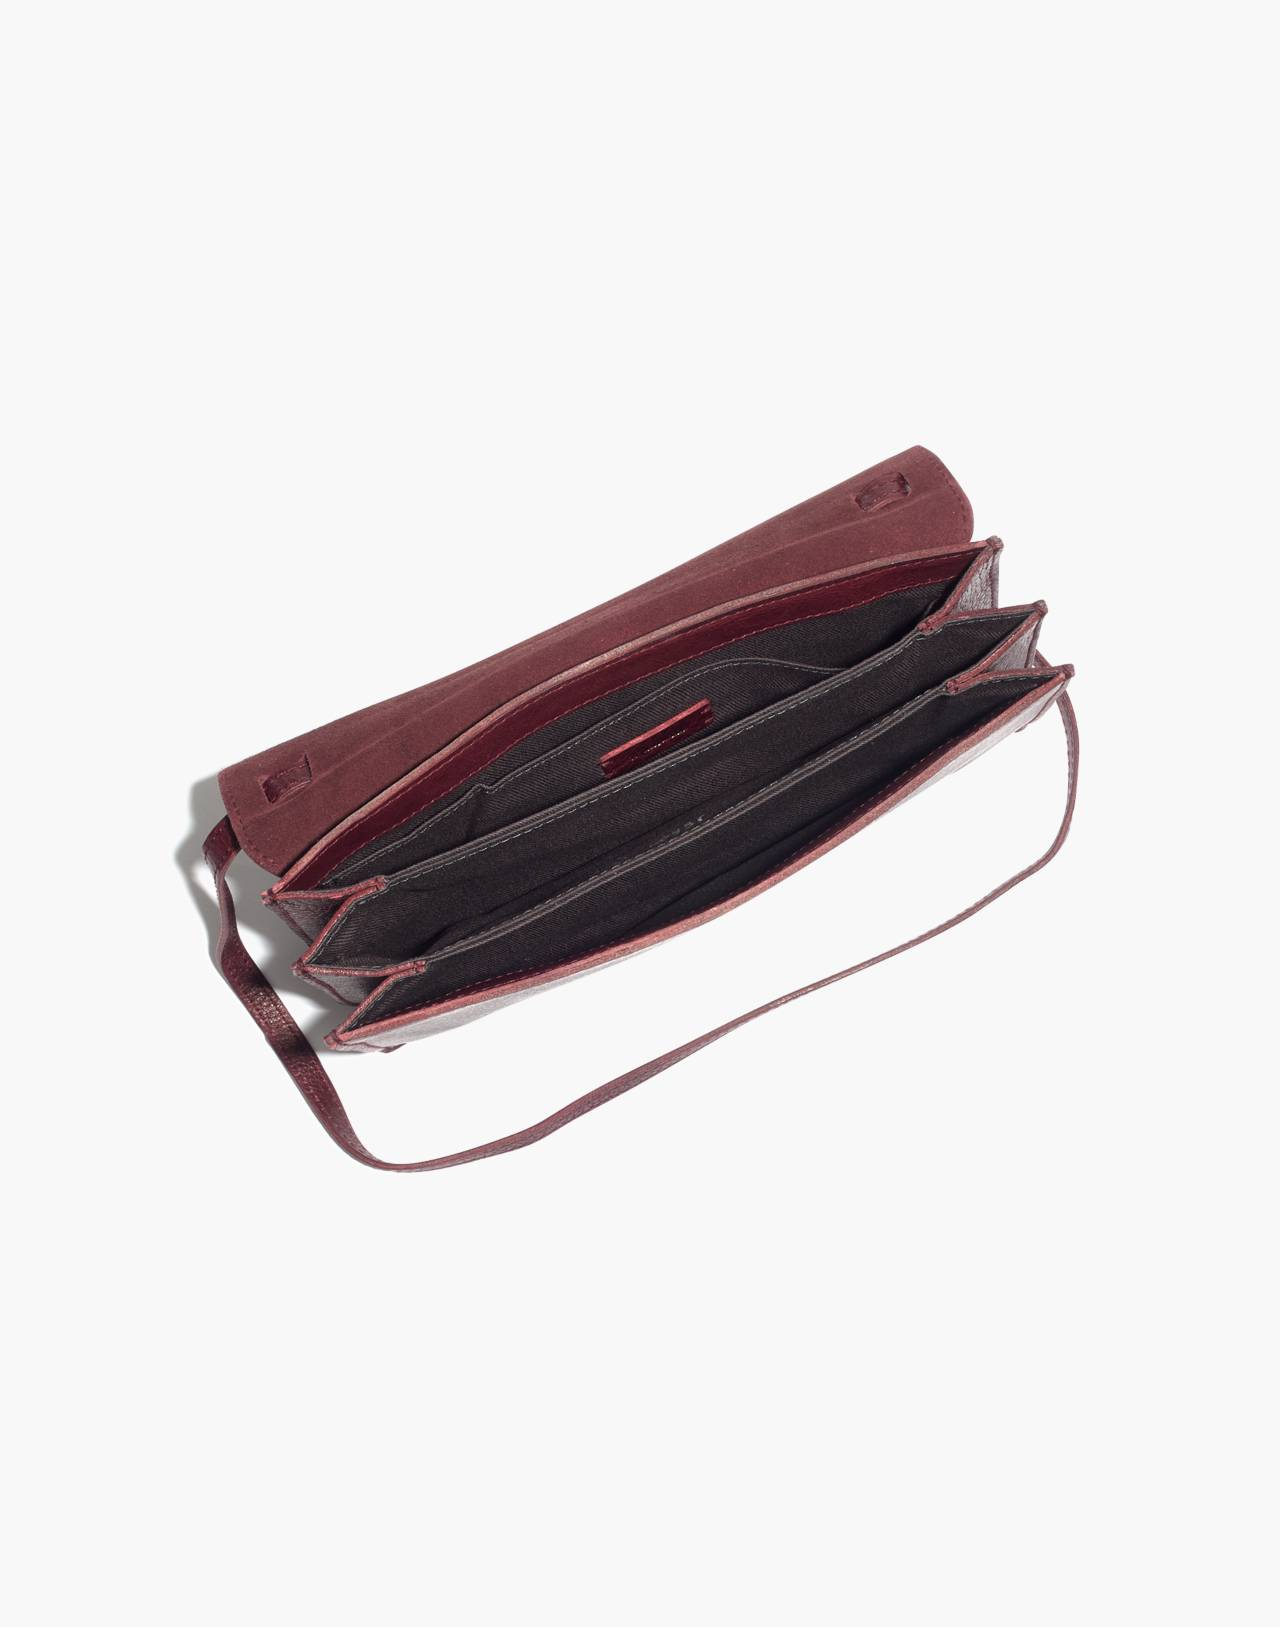 The Slim Convertible Bag in dark cabernet image 2